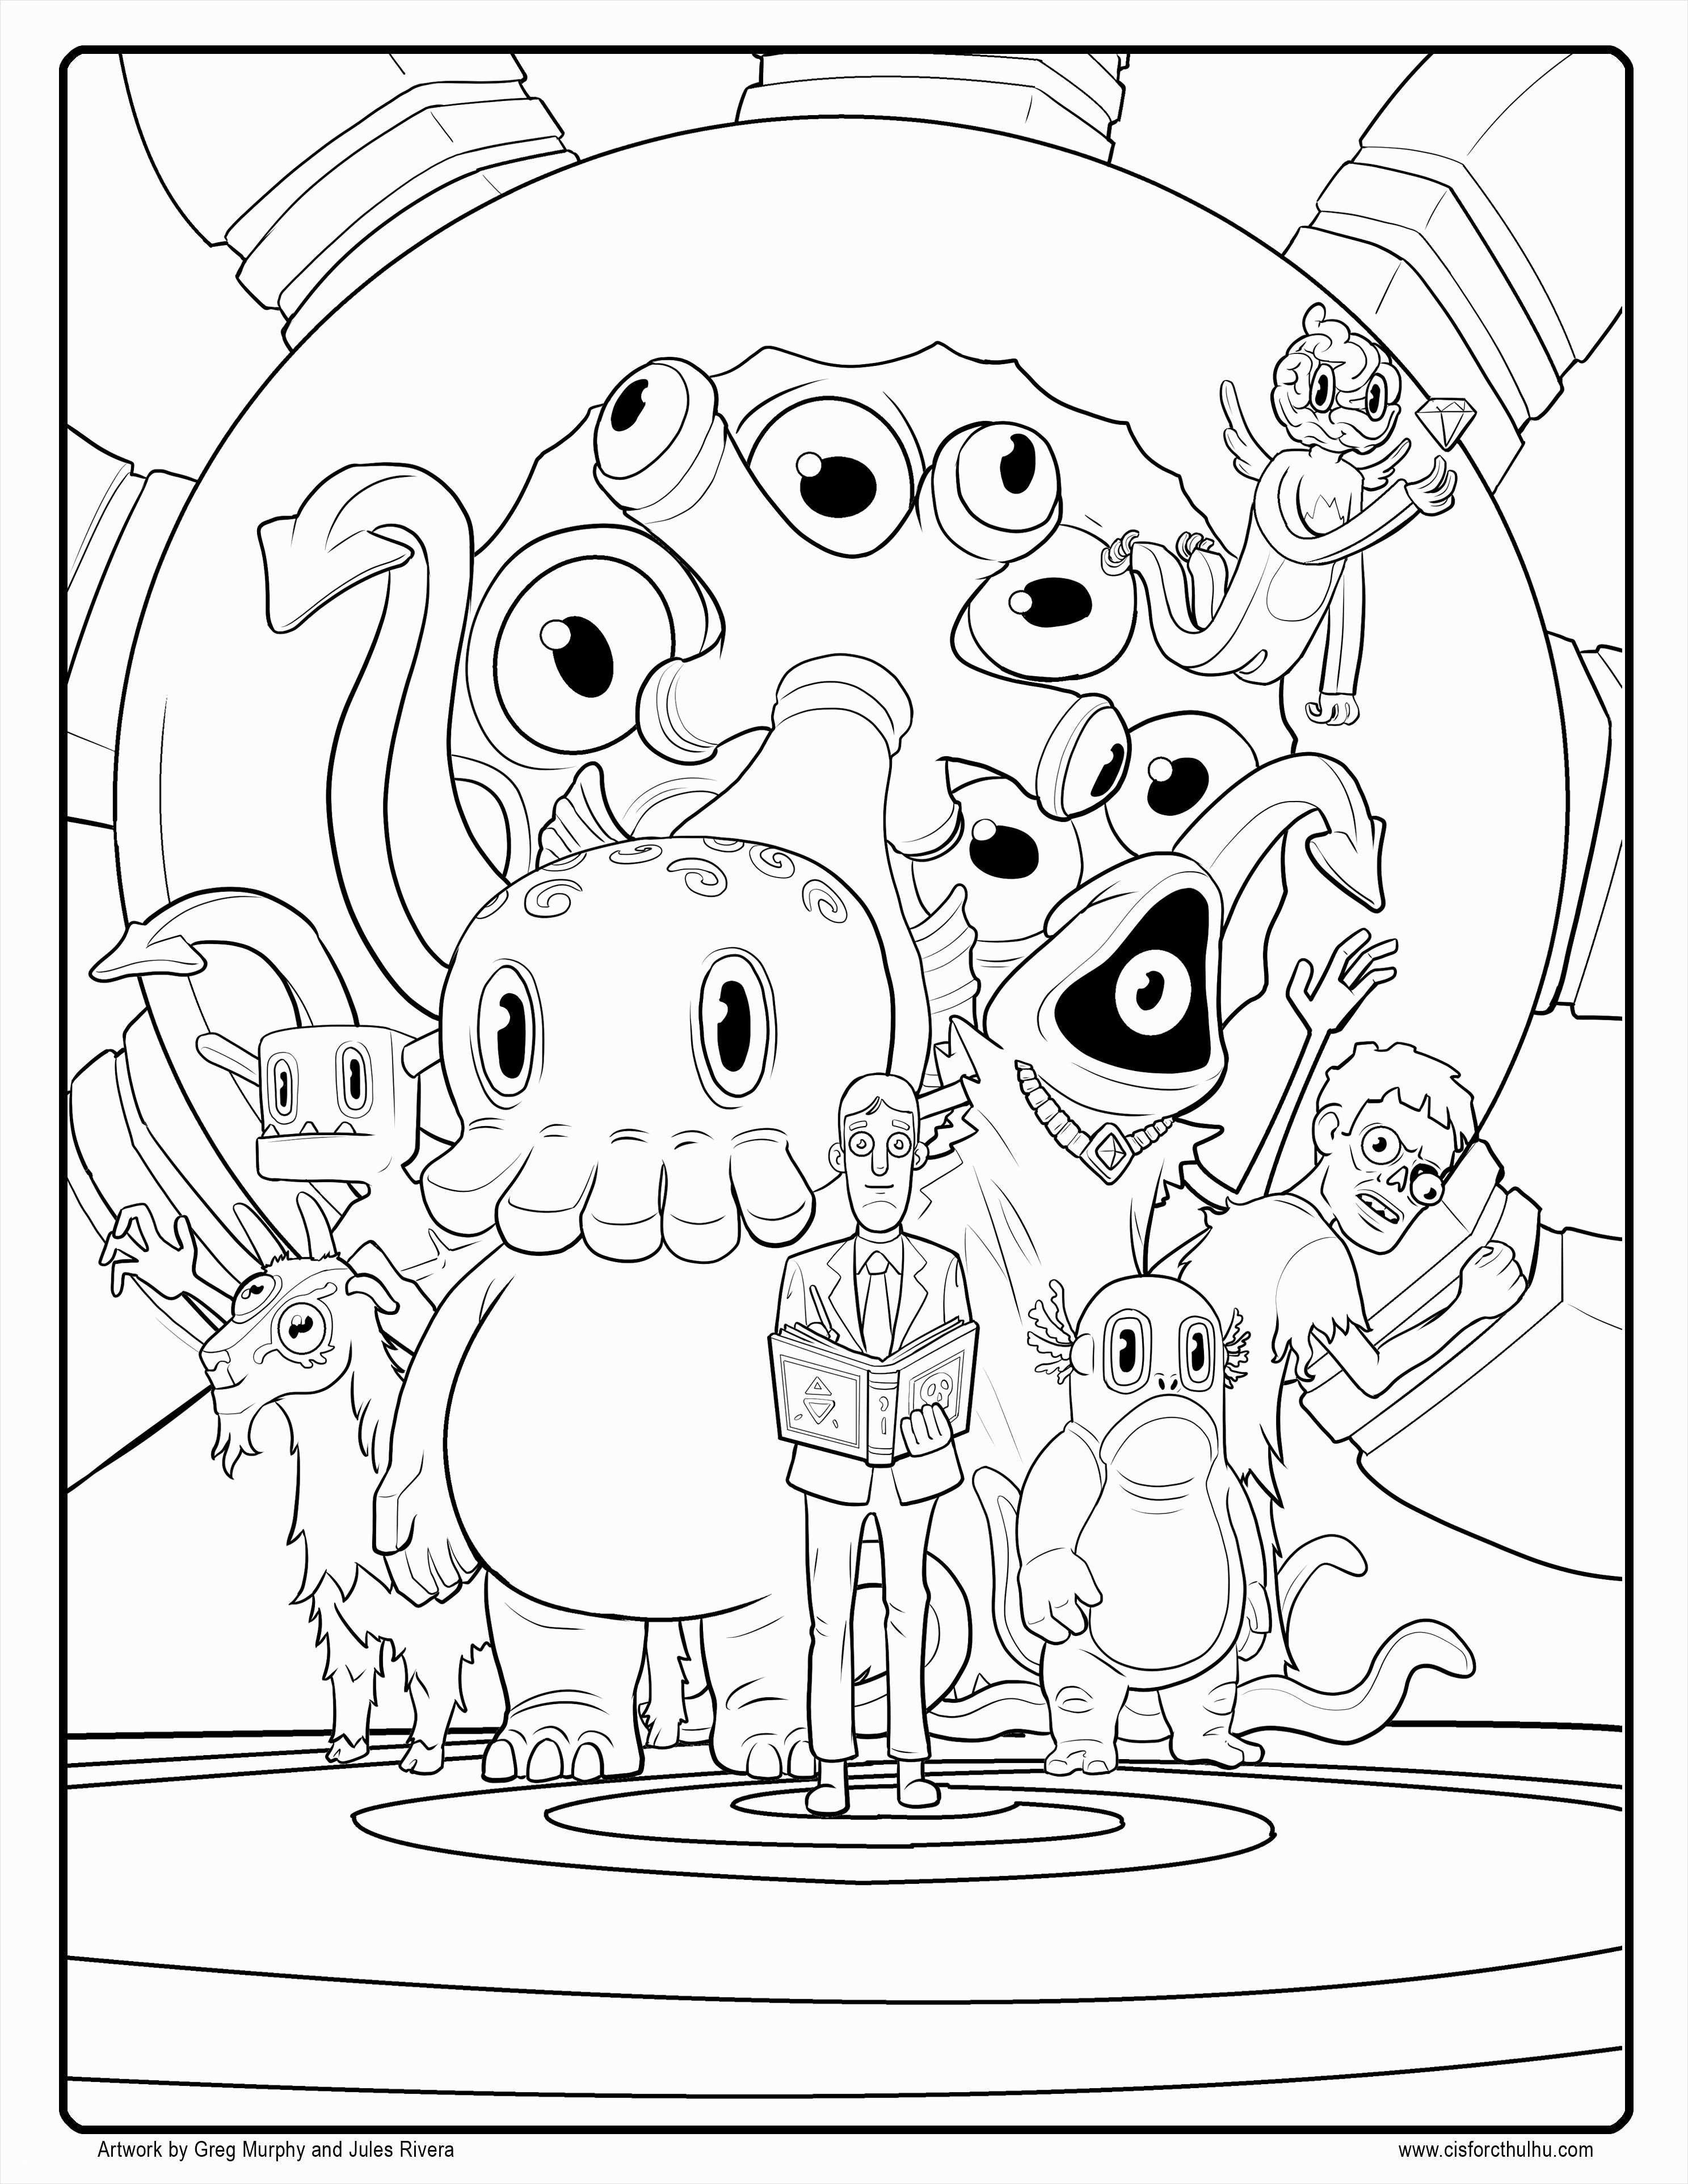 Little Einsteins Coloring Pages Beautiful Powerpuff Girls Coloring Pages Unicorn Coloring Pages Animal Coloring Pages Princess Coloring Pages [ 3850 x 2975 Pixel ]